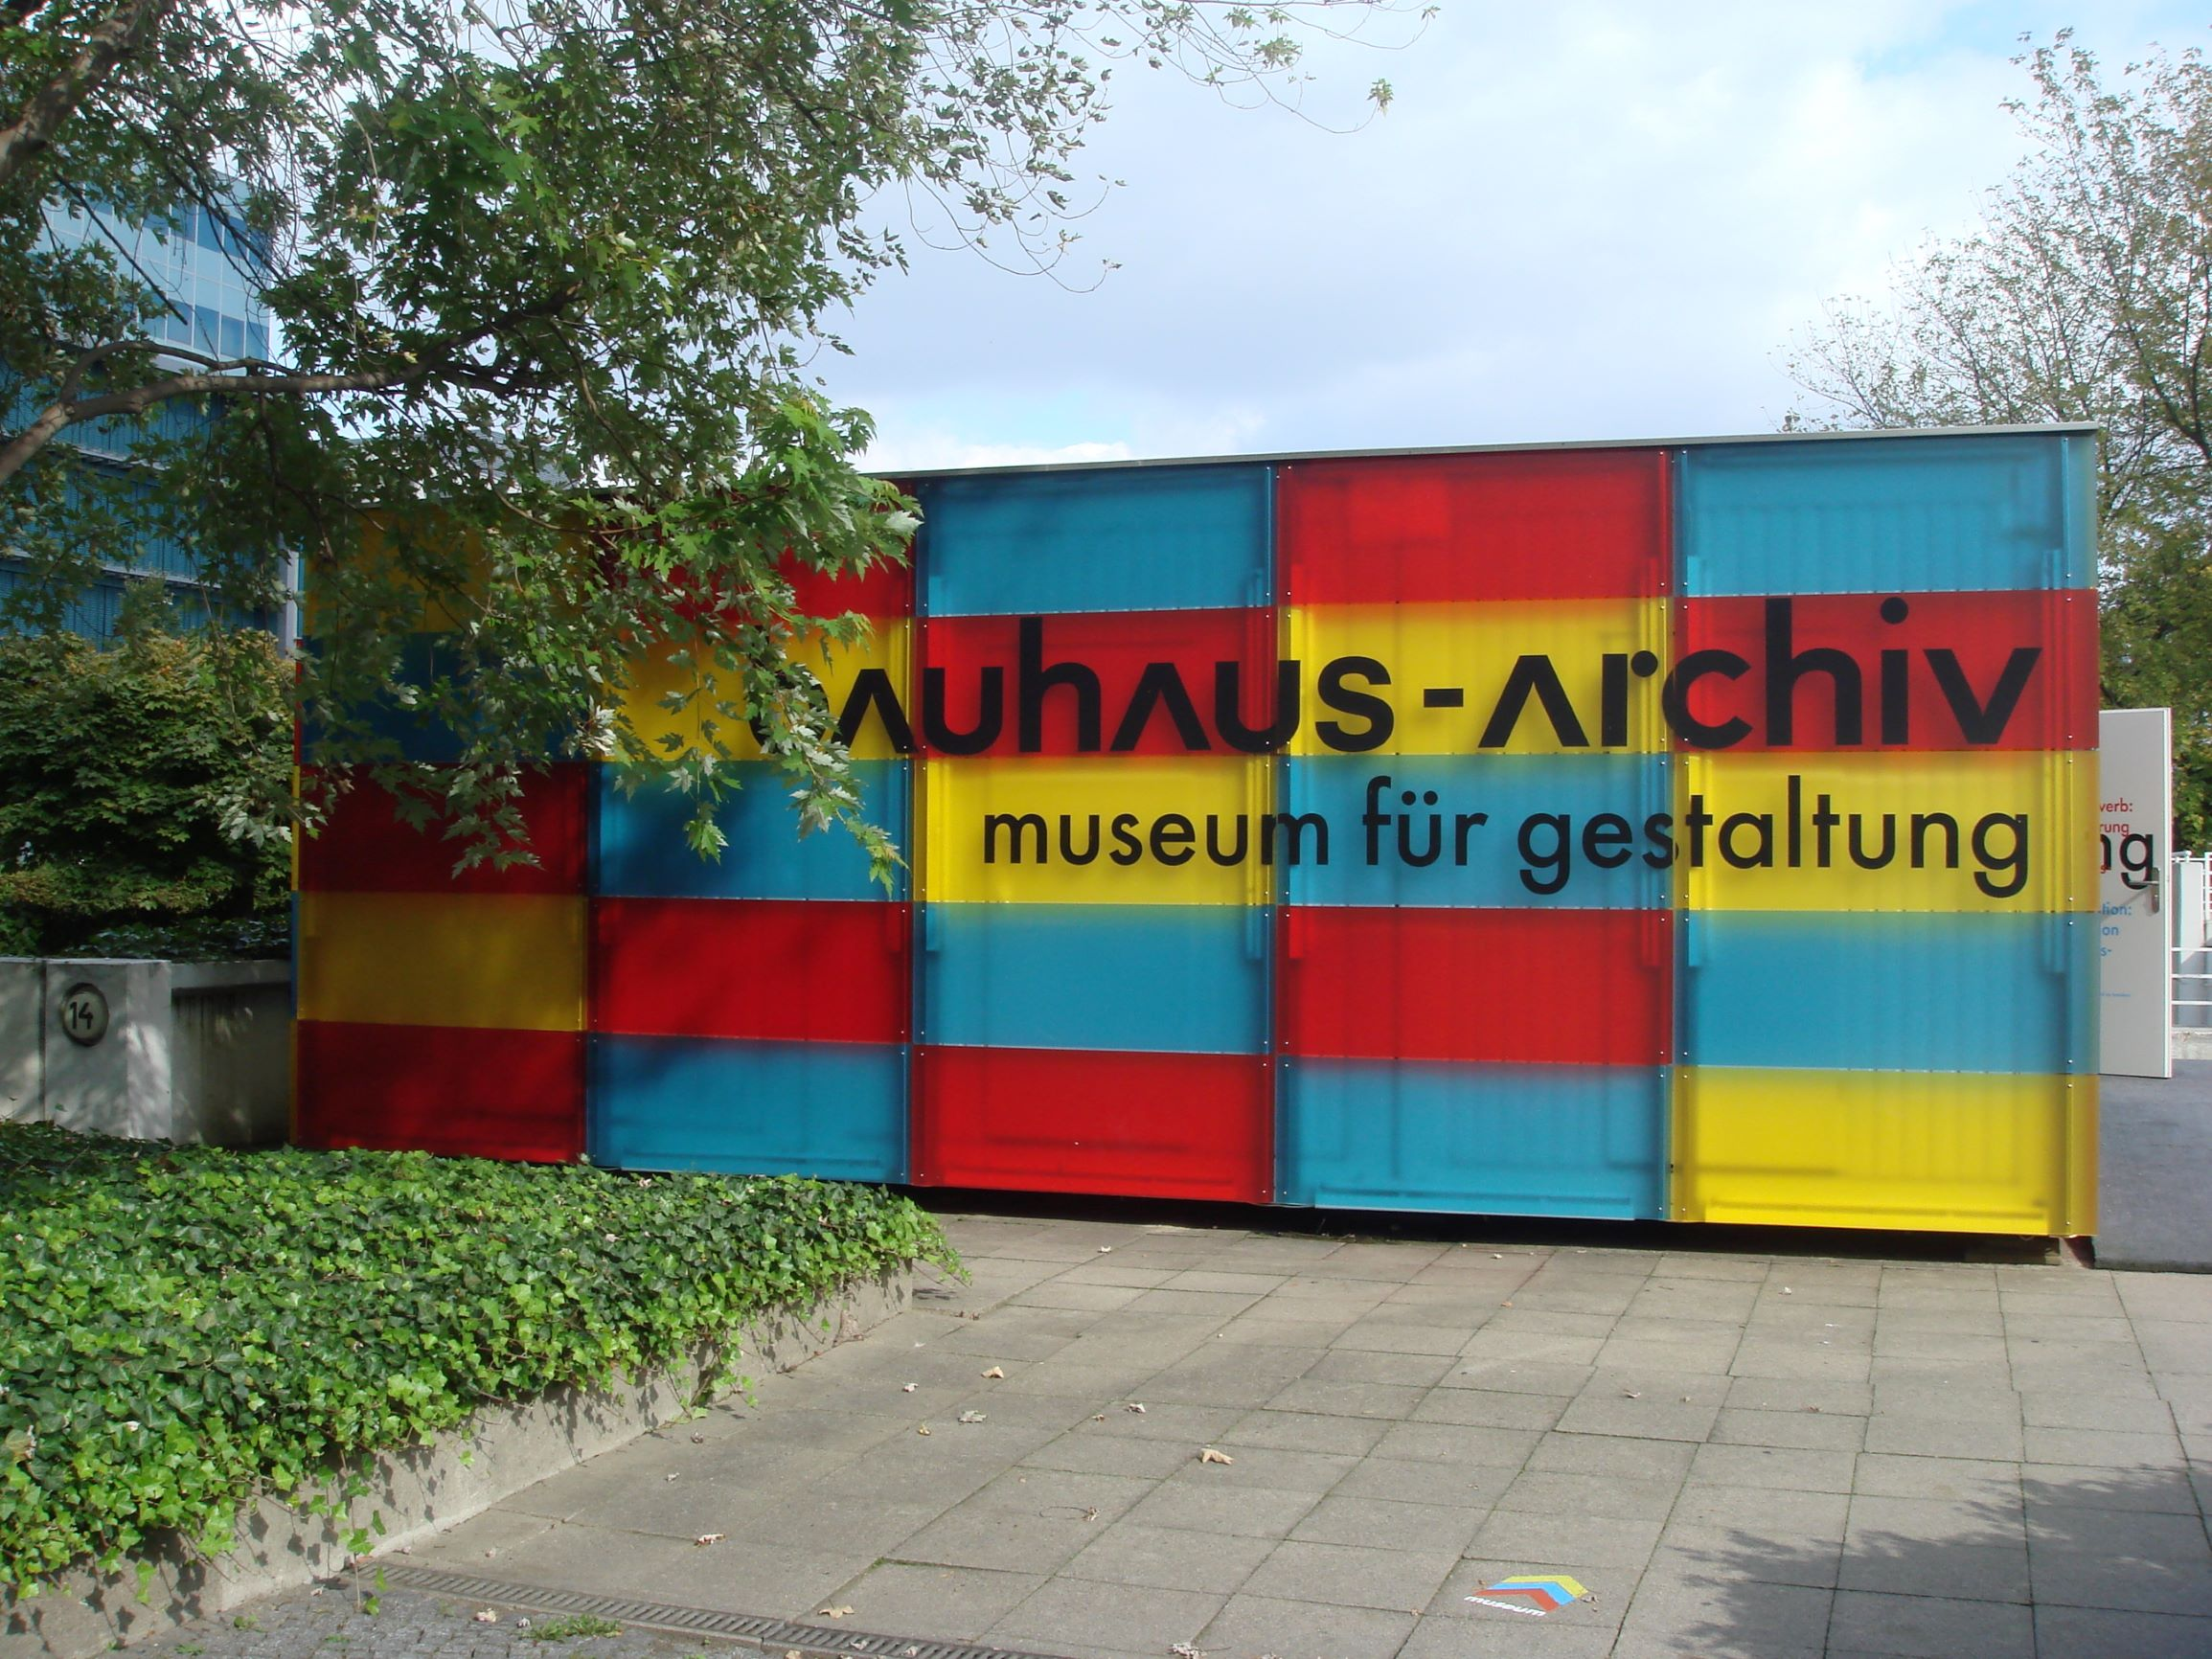 4MP_IMG_Bauhausarchiv_Berlin_JHG_11